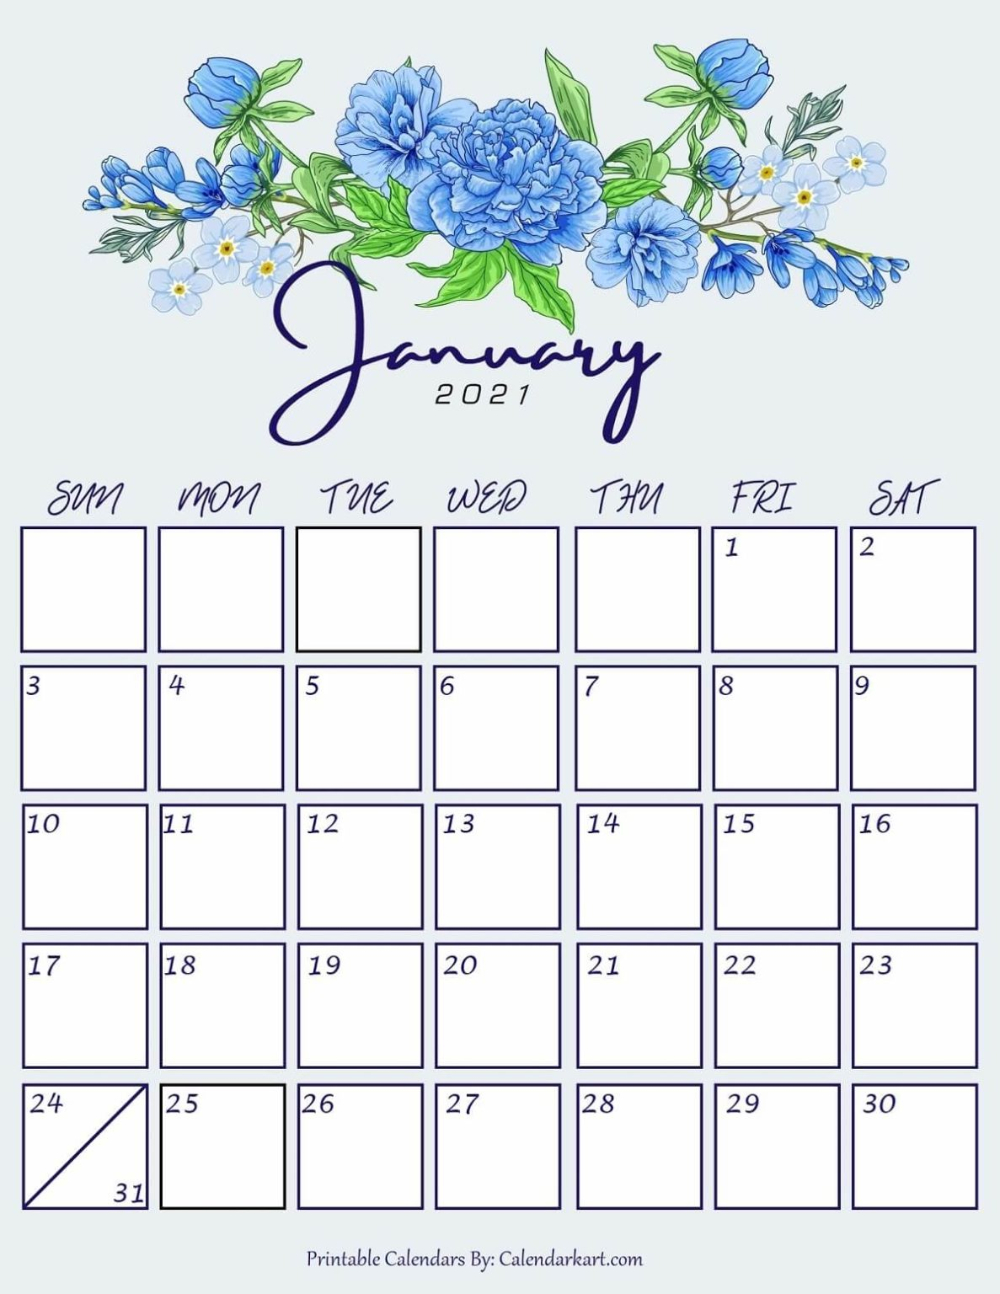 Cute January 2021 Floral Calendar | Printable Calendar